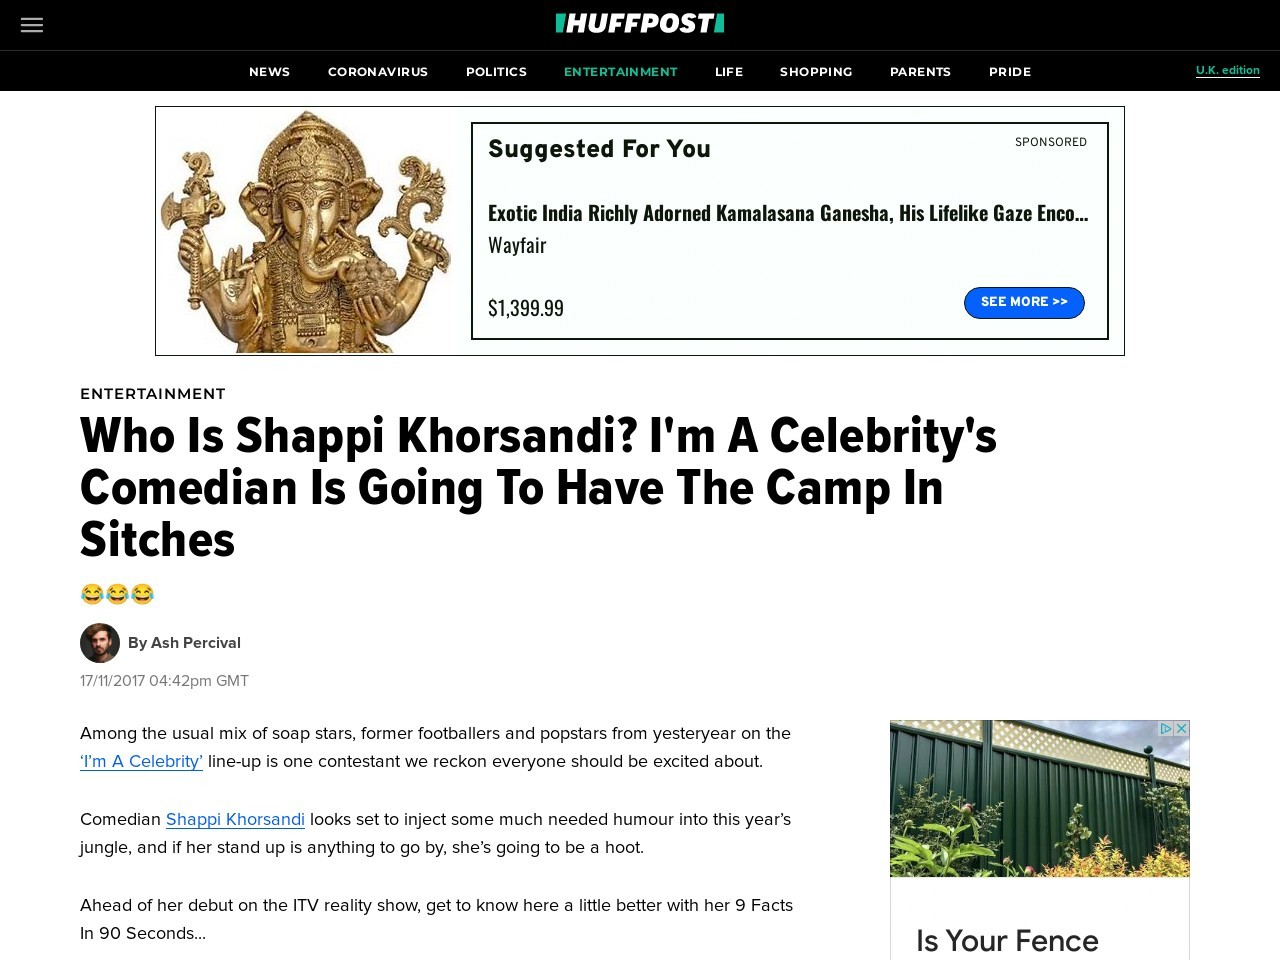 Who Is Shappi Khorsandi? I'm A Celebrity's Comedian Is Going To Have The Camp In Sitches